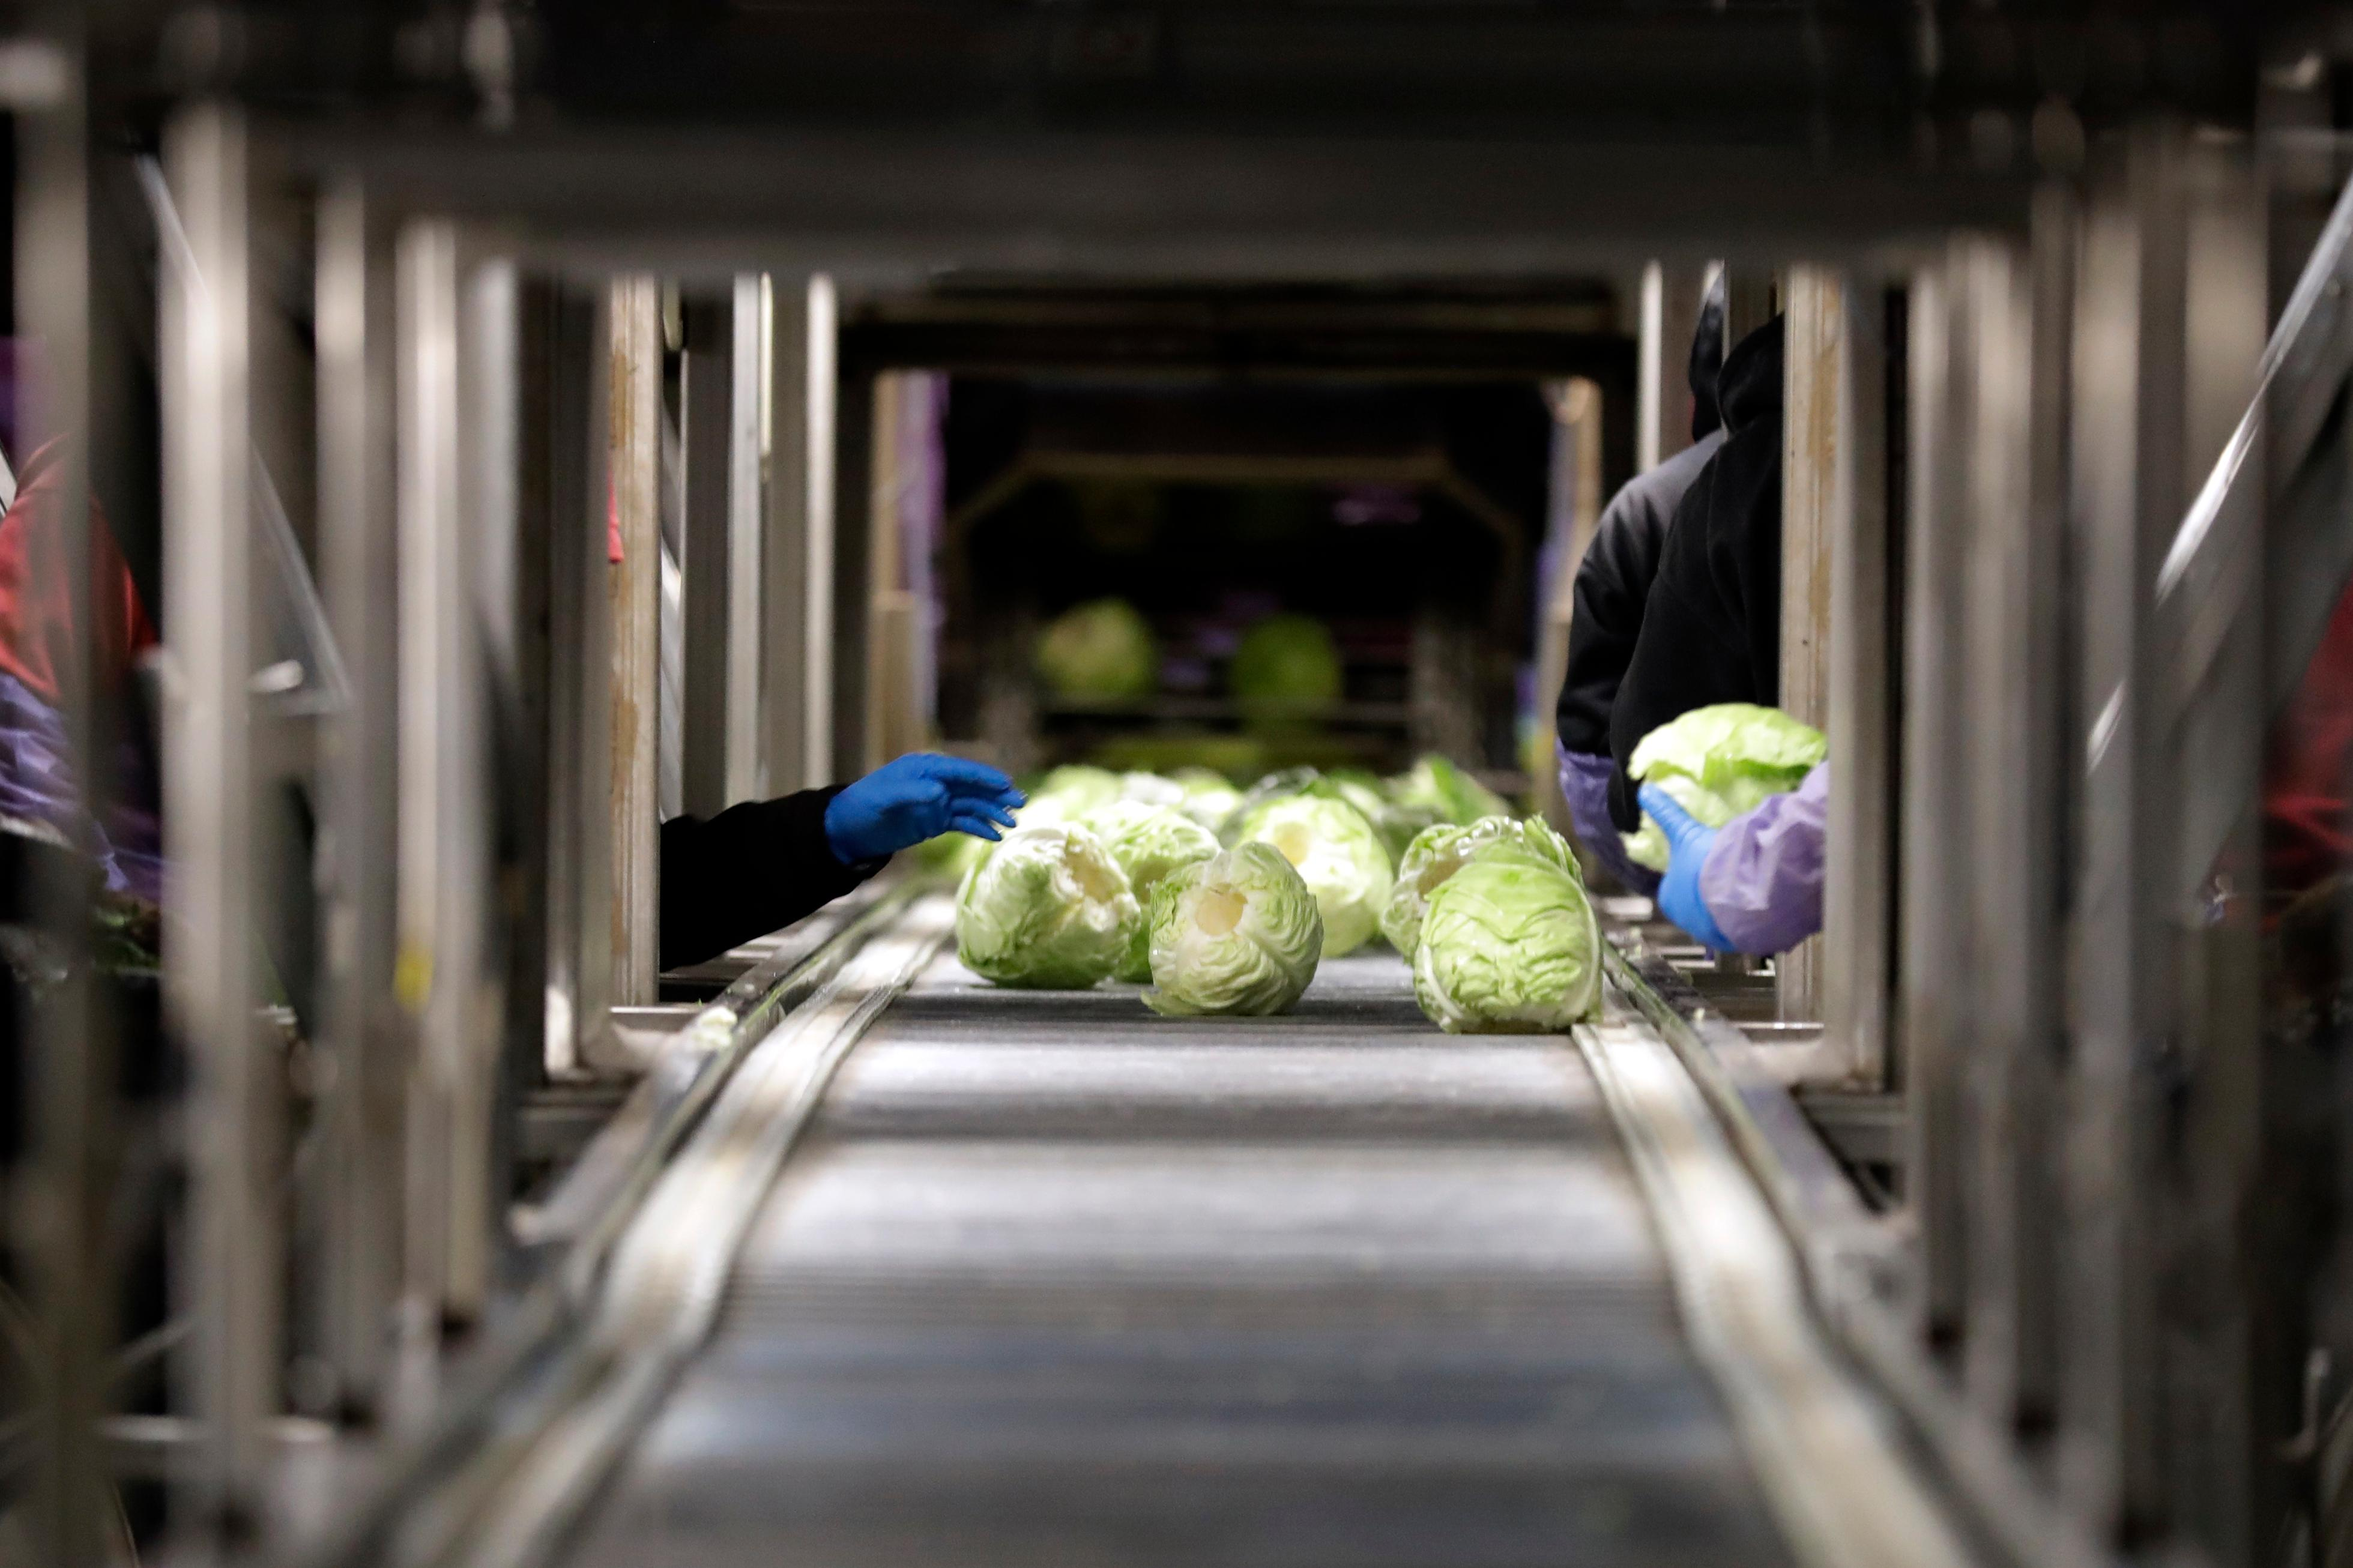 "In this March 6, 2018 picture, farmworkers harvest cabbage before dawn in a field outside of Calexico, Calif. For decades, cross-border commuters have picked lettuce, carrots, broccoli, onions, cauliflower and other vegetables that make California's Imperial Valley ""America's Salad Bowl"" from December through March. As Trump visits the border for the first time as president on Tuesday, March 13, the harvest is a reminder of how little has changed despite heated rhetoric in Washington. (AP Photo/Gregory Bull)"